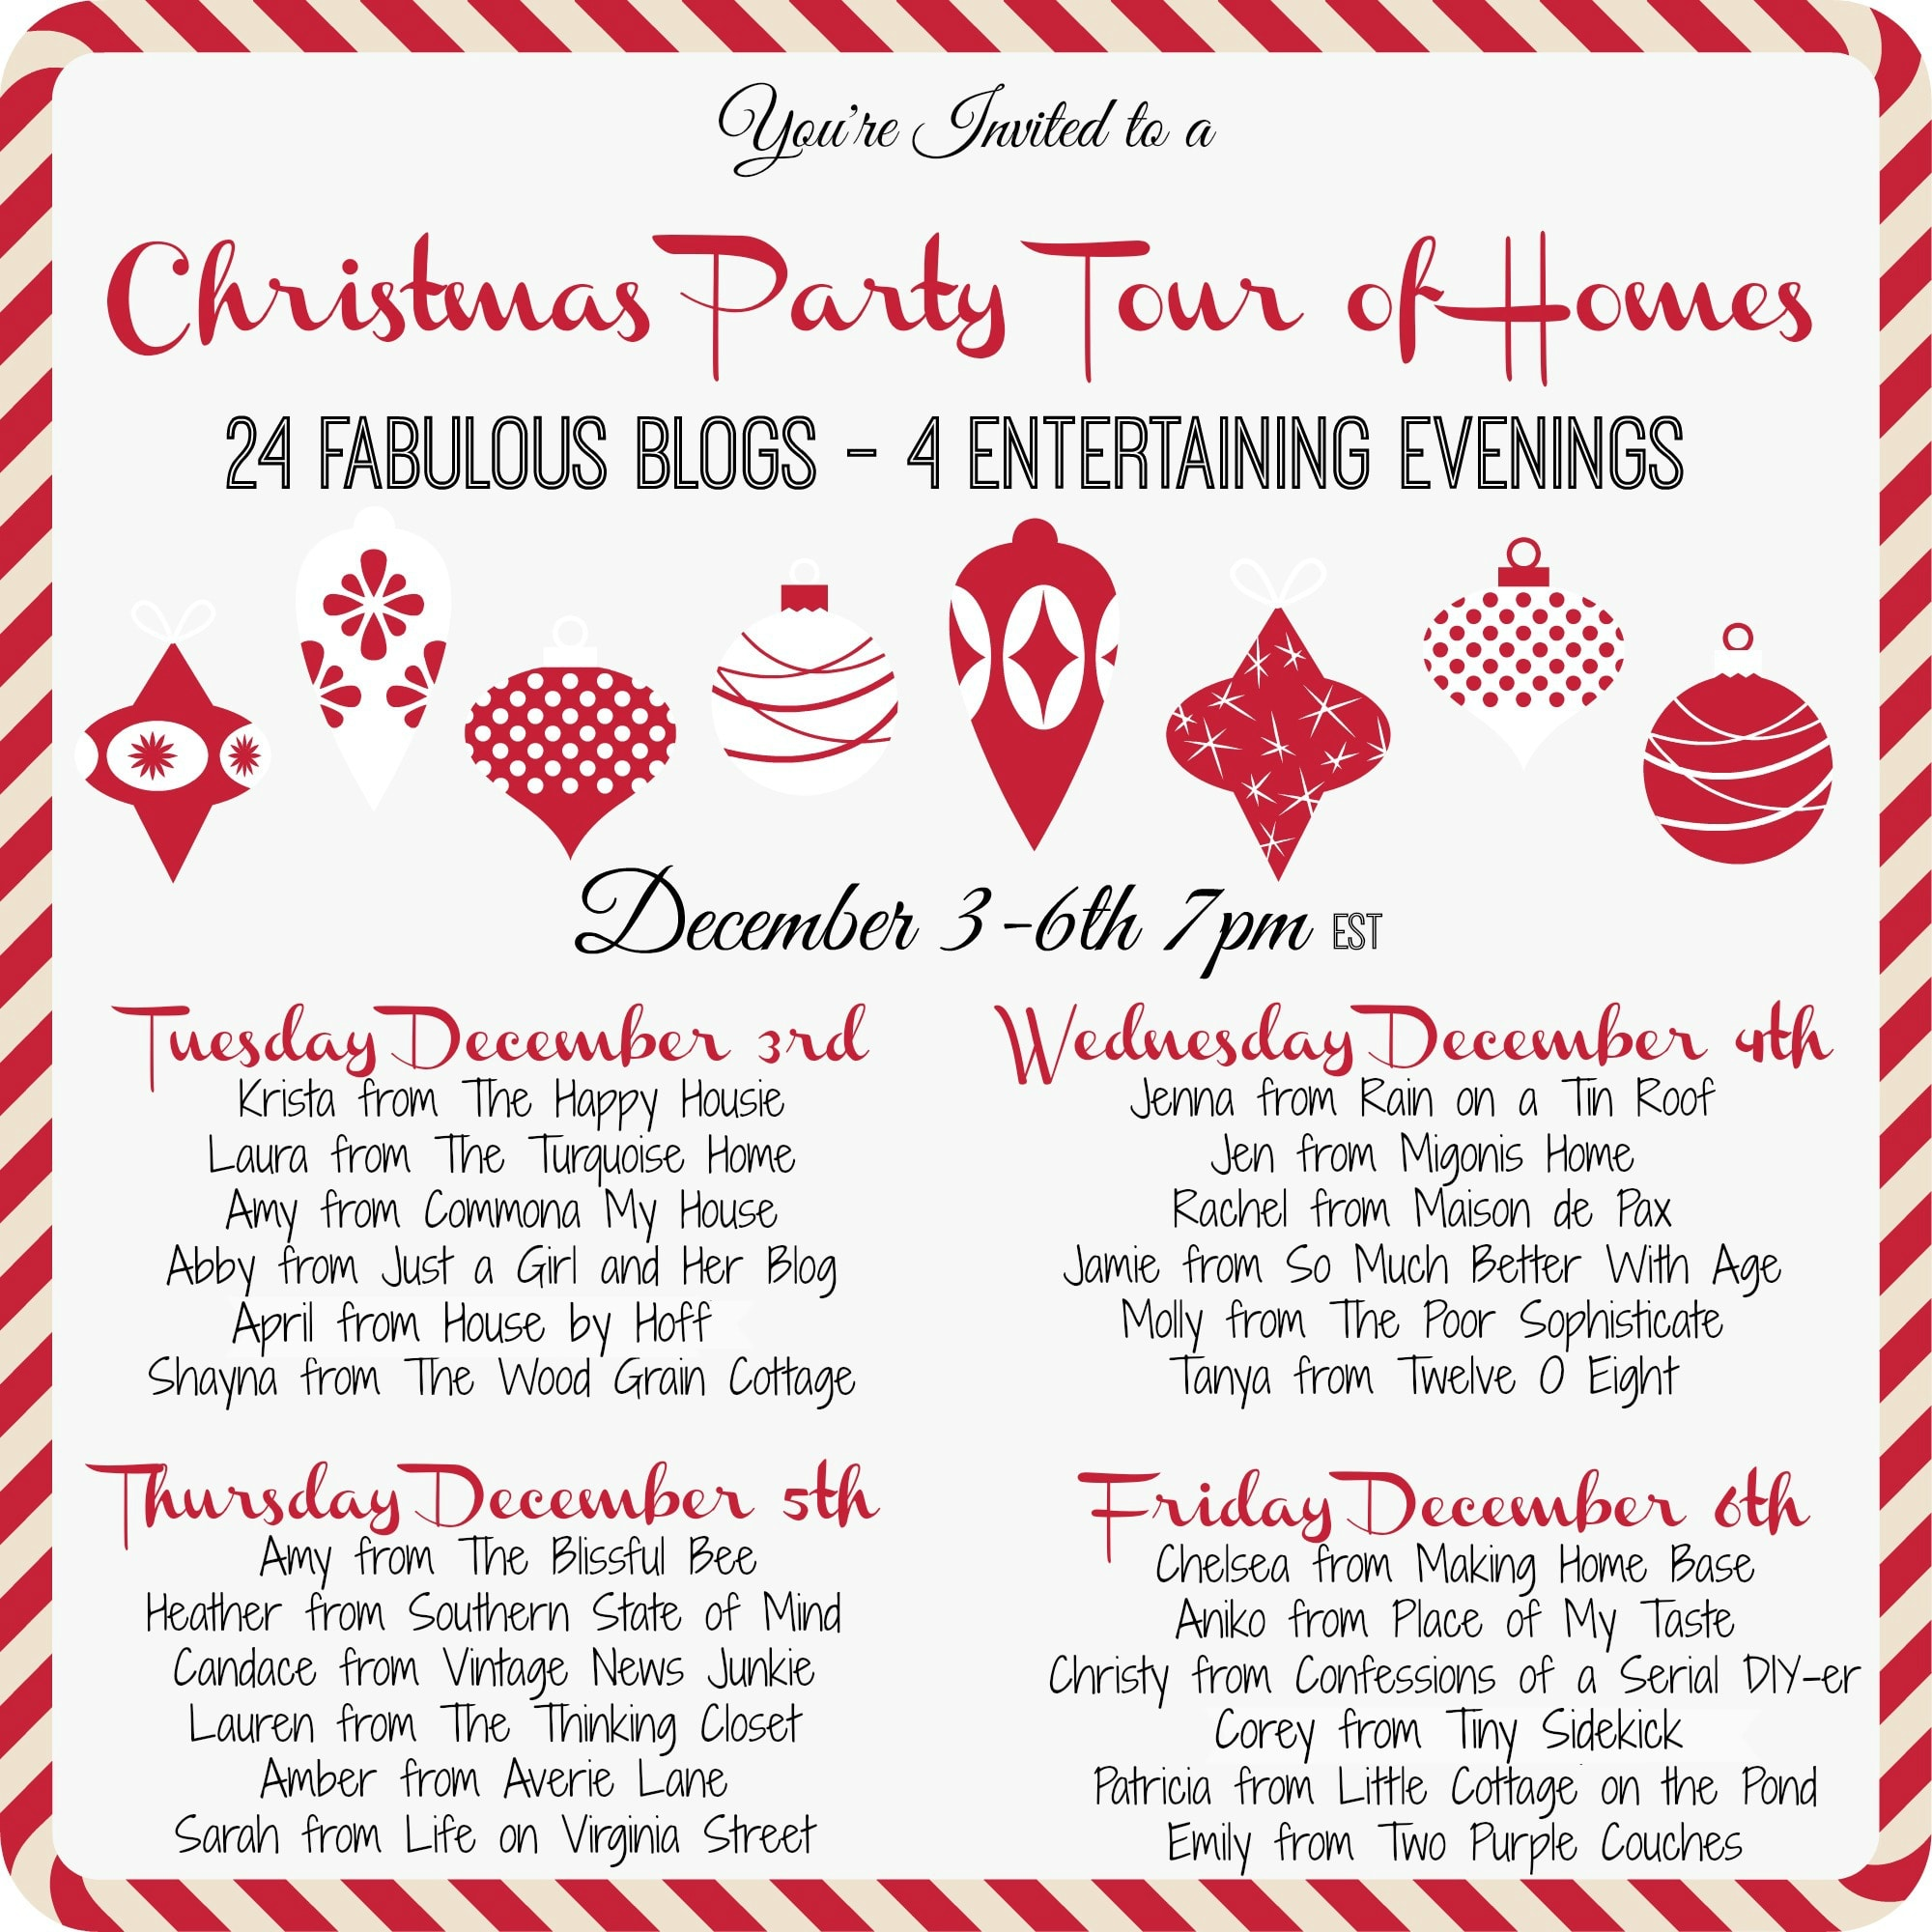 Christmas Party Tour of Homes - Just a Girl and Her Blog